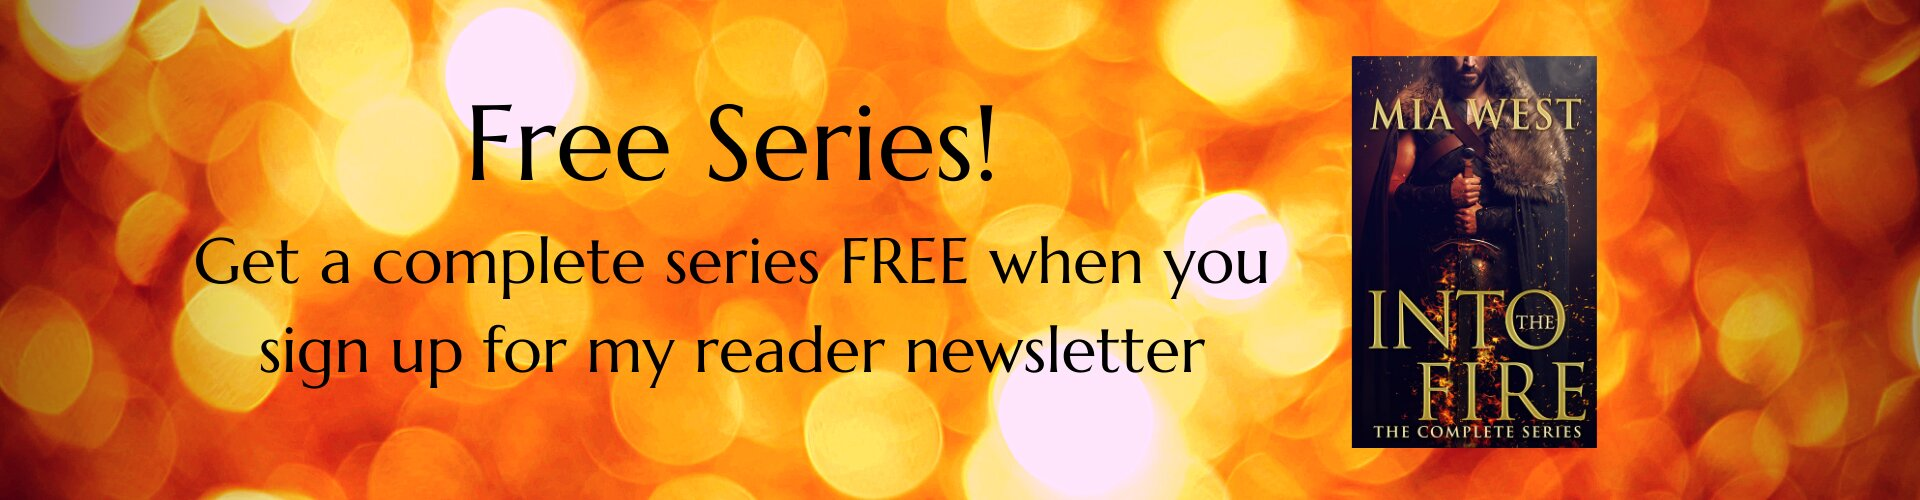 2 free books for newsletter sign up